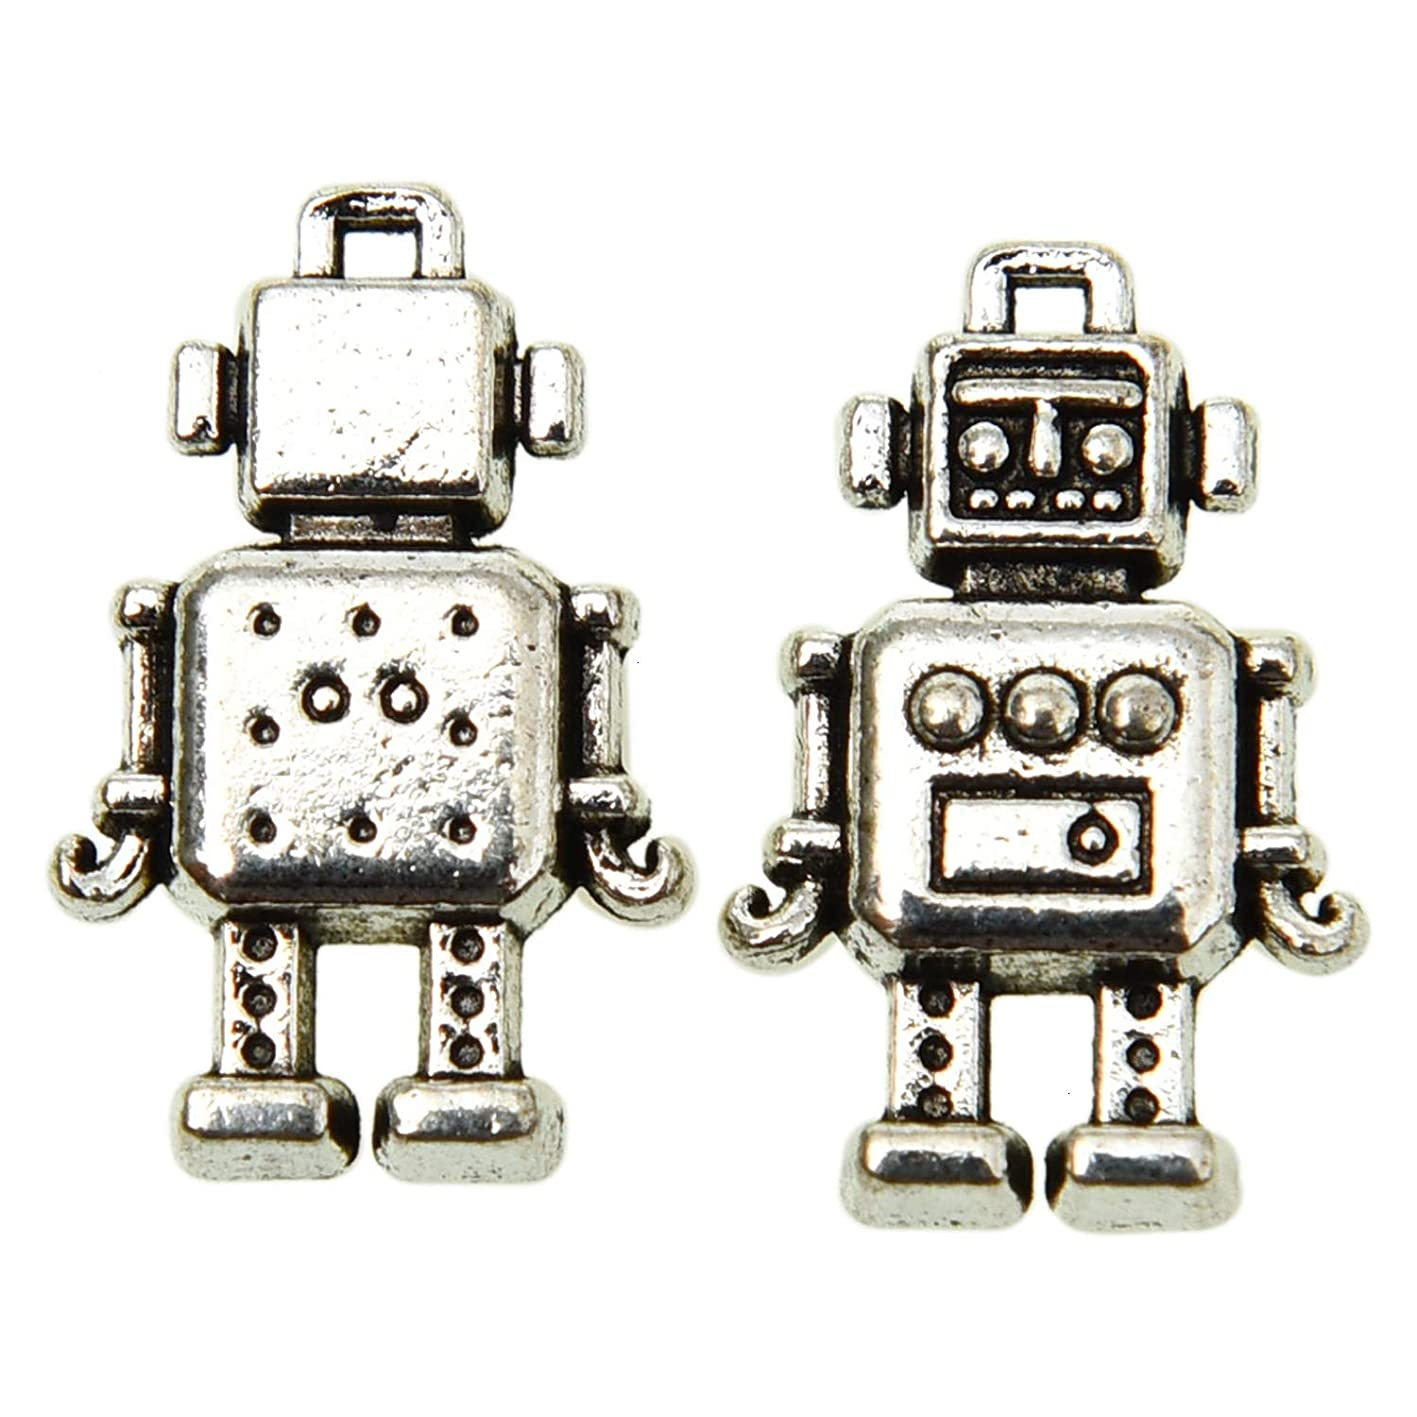 Monrocco 100 Pcs Tibetan Style Antique Silver Tone Mechanic Robot Charms Machine Toy Charms Pendant Bulk for Bracelets Necklace Jewelry Making buakgydxole811